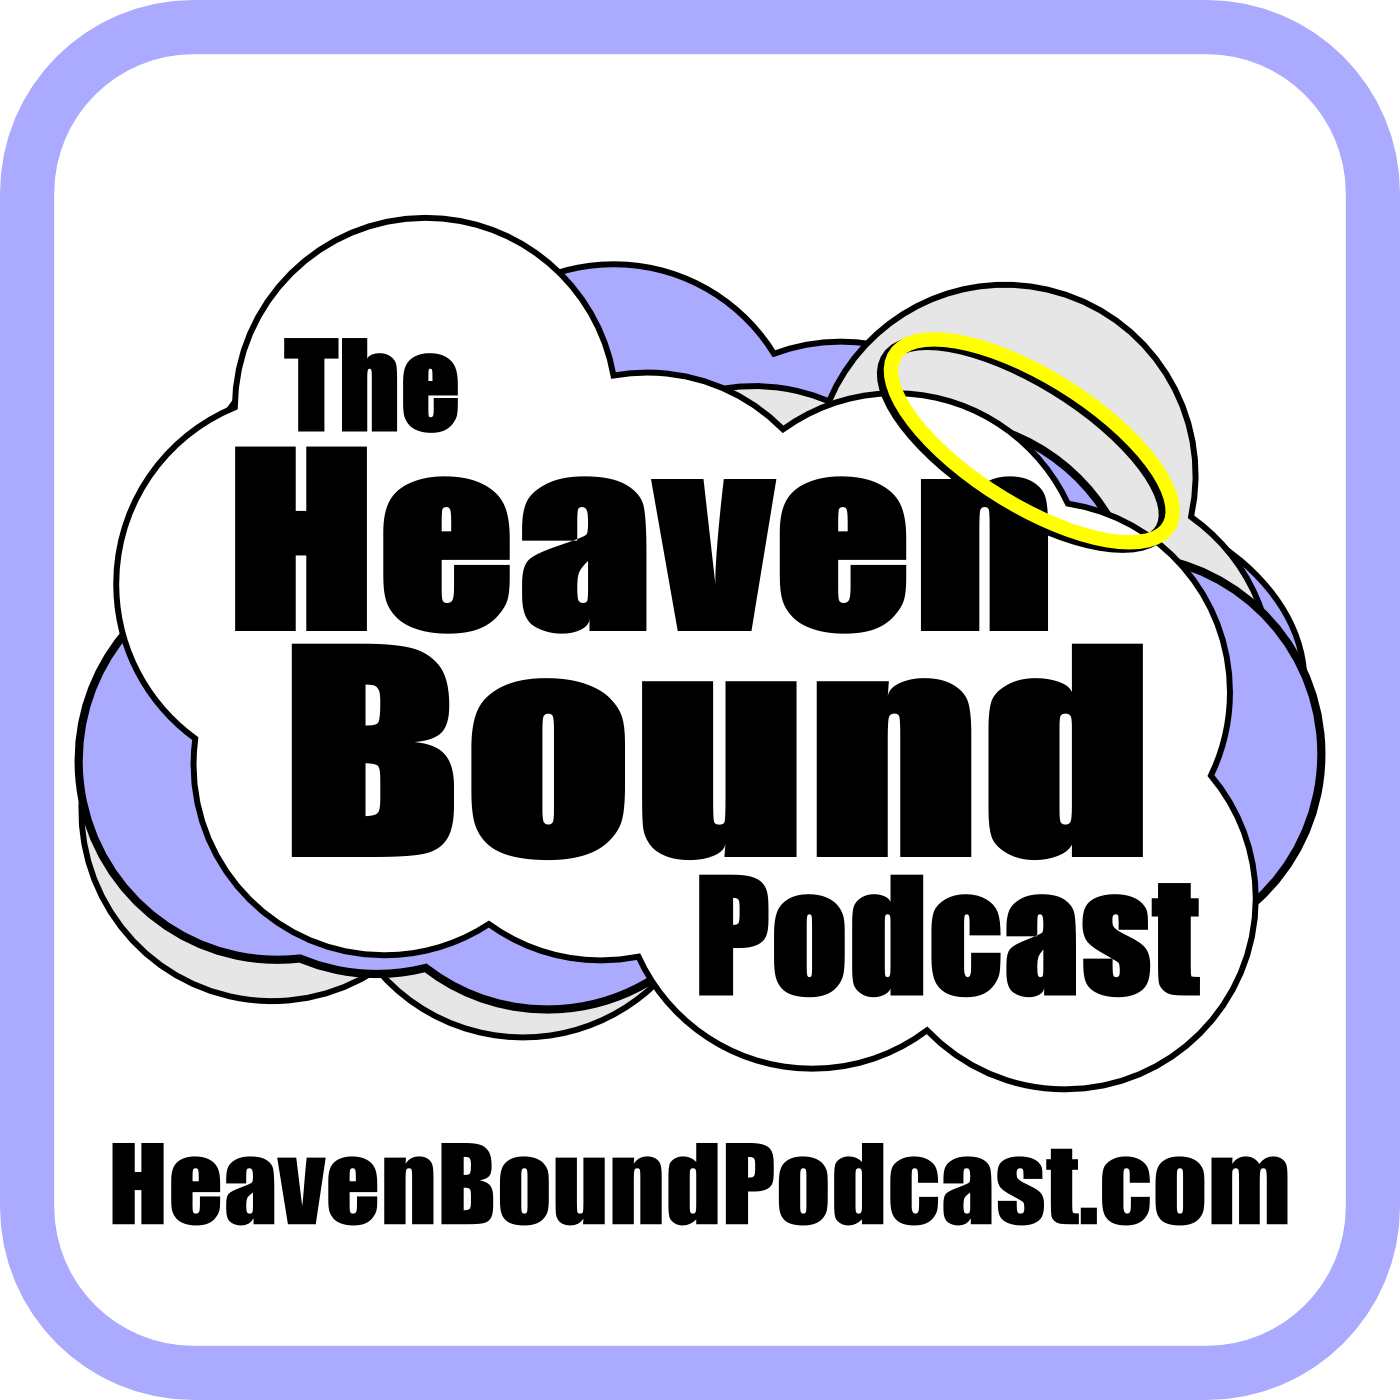 The Heaven Bound Podcast